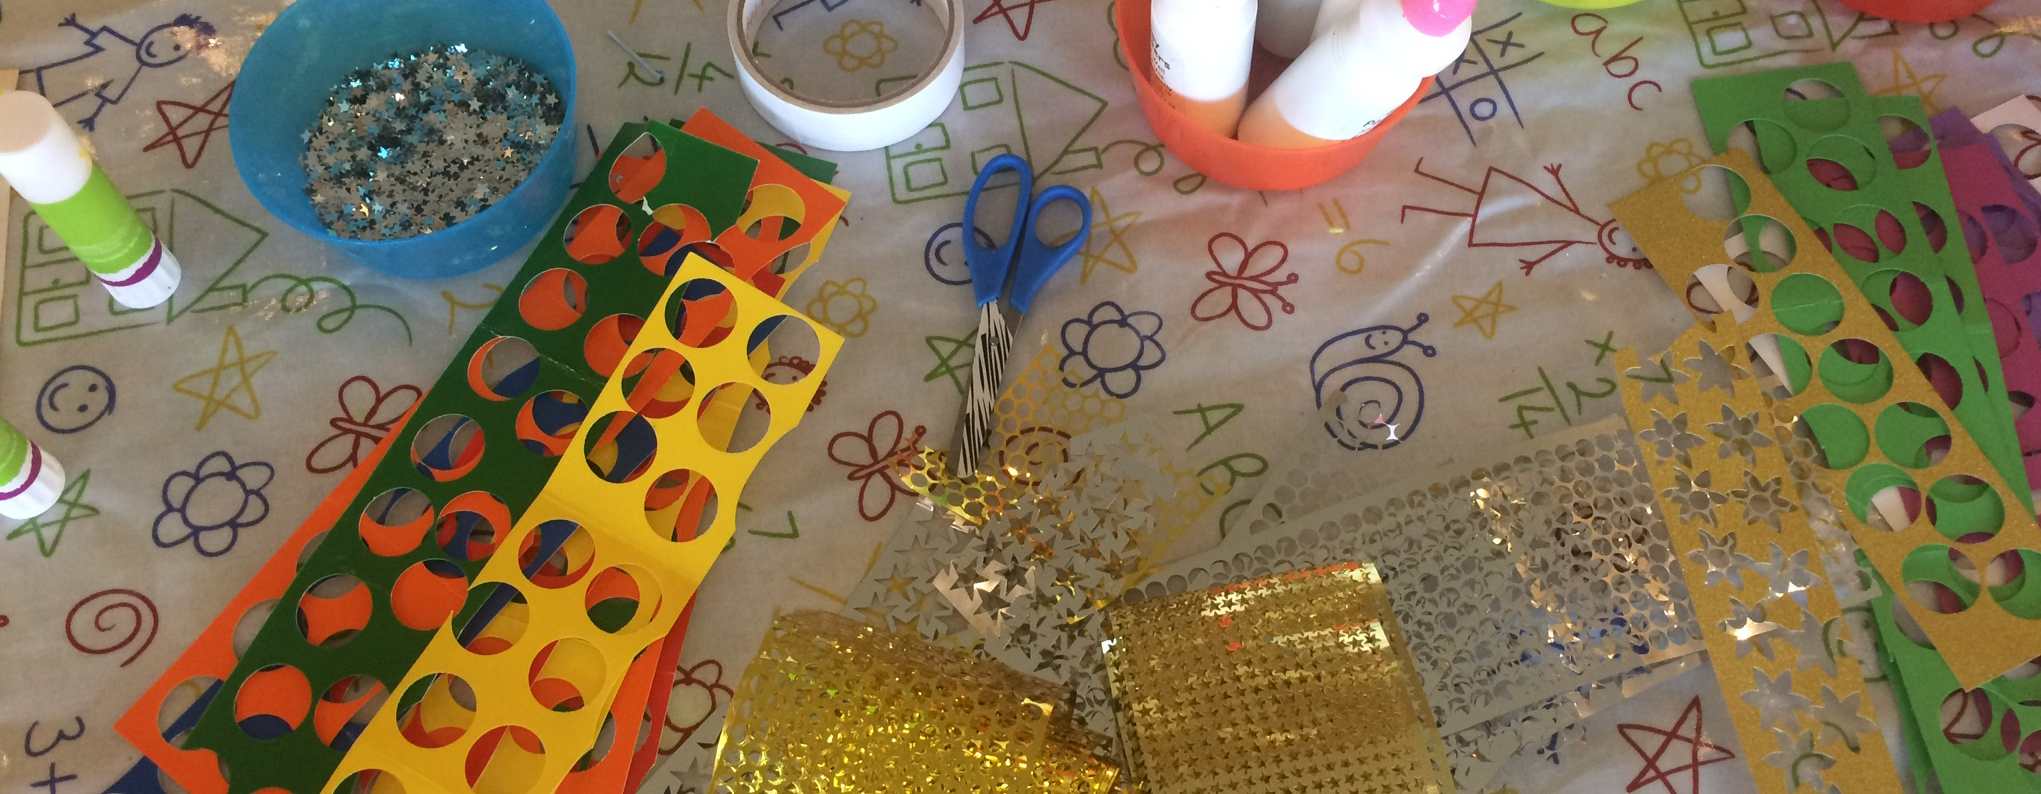 Crafts for parties